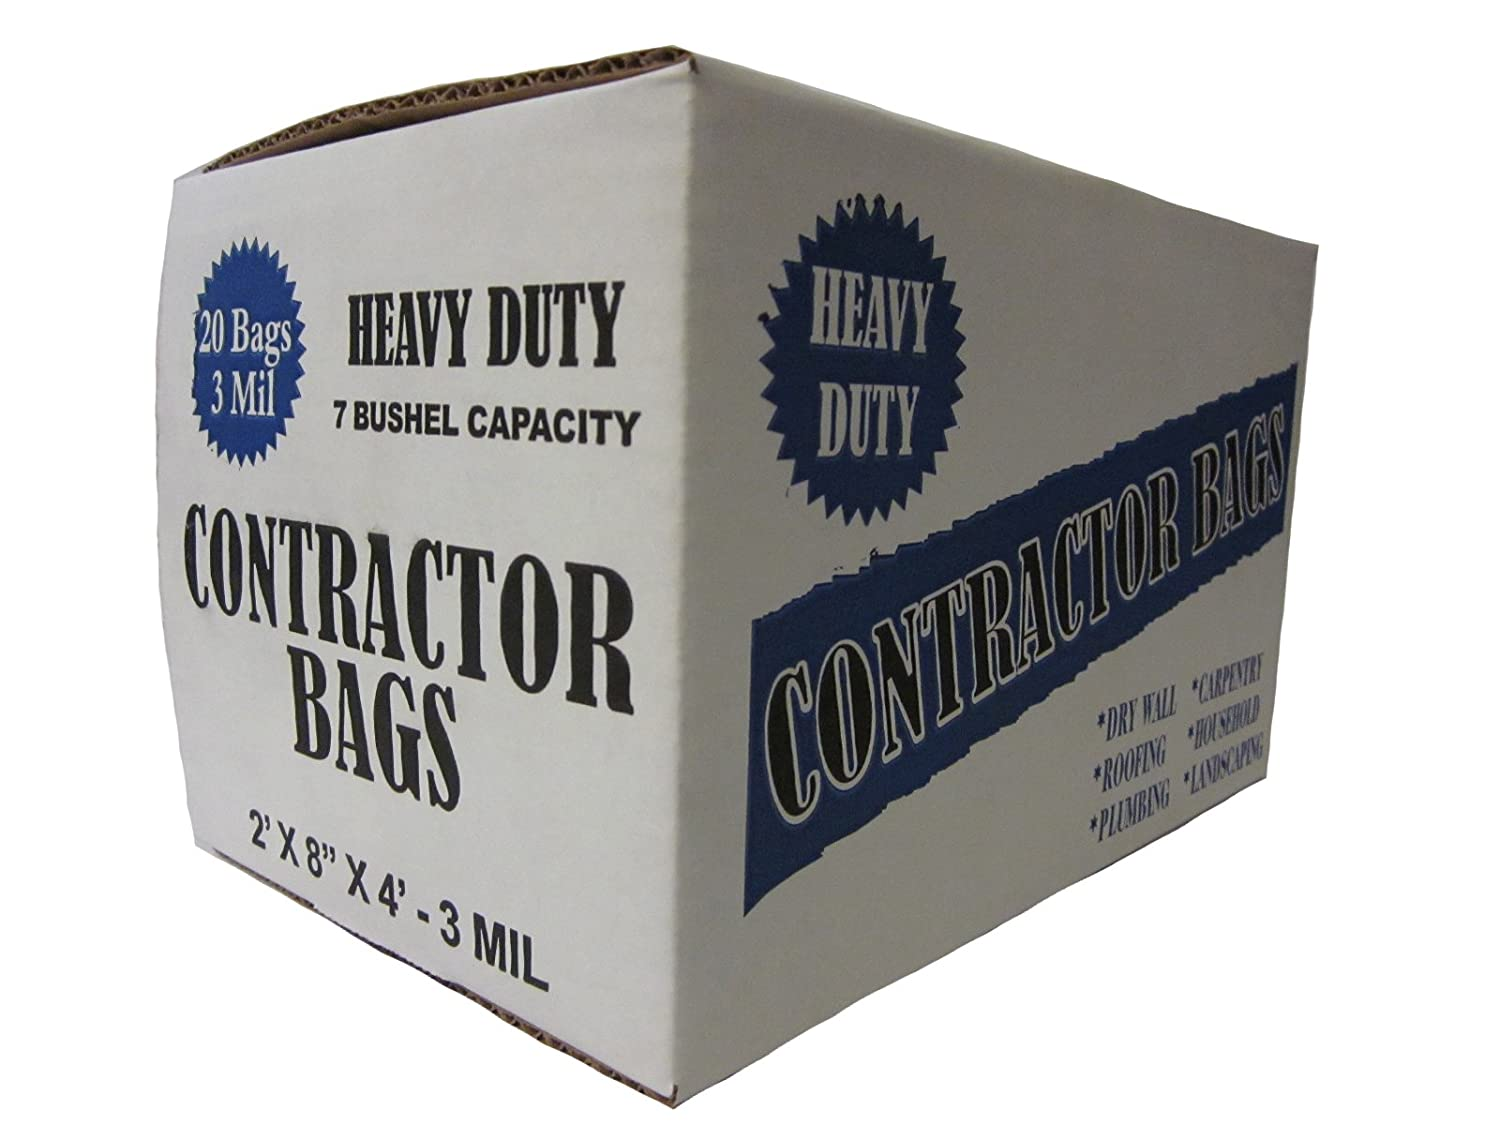 Heavy Duty Contractor 20 Bags/3MIL (32 by 50) Plastic Prince 3250